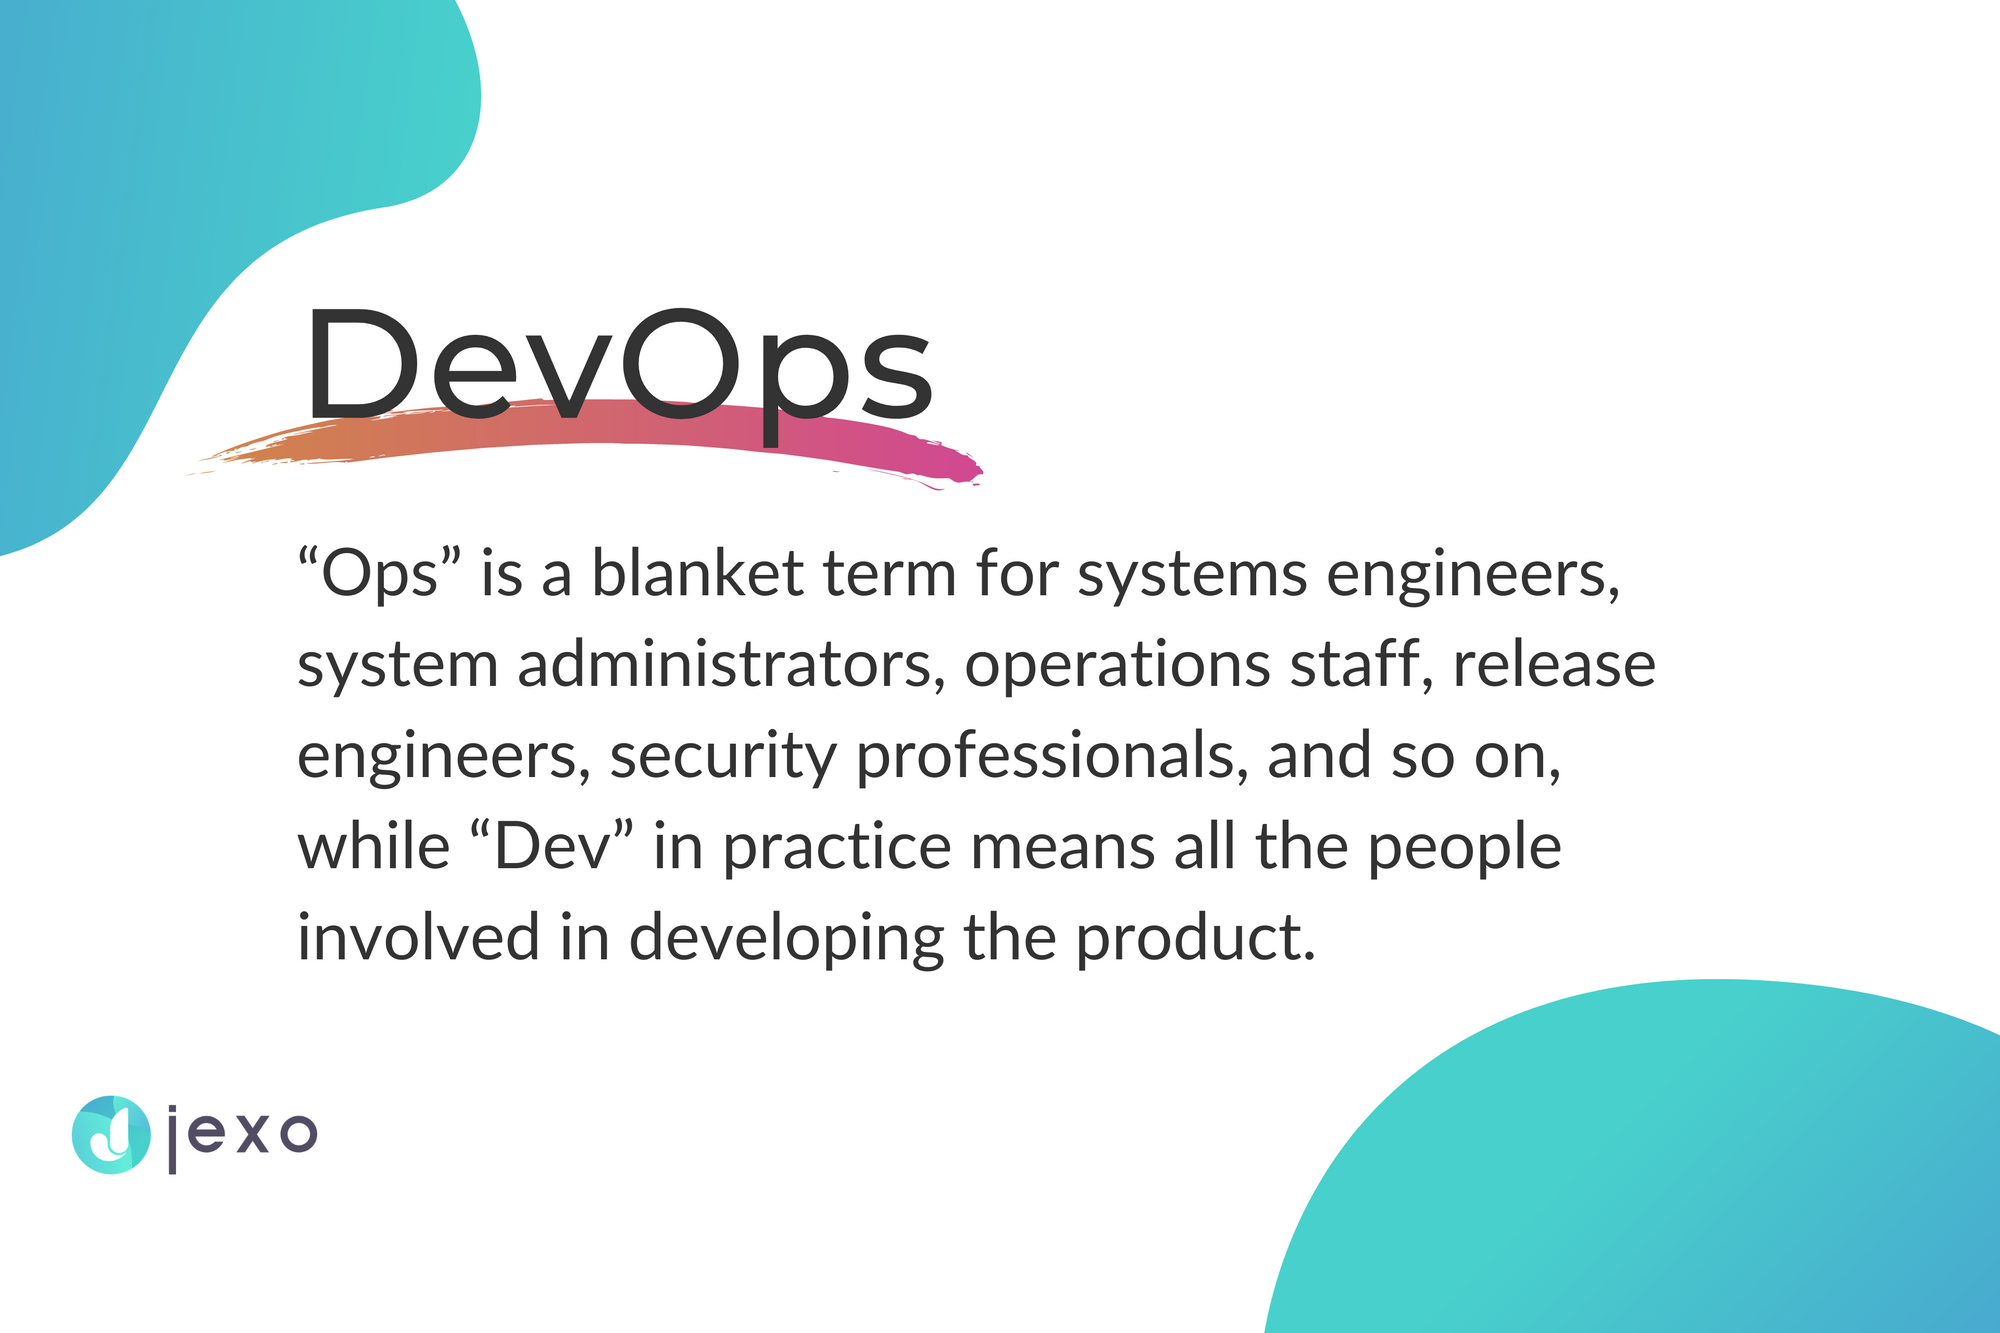 The meaning of DevOps